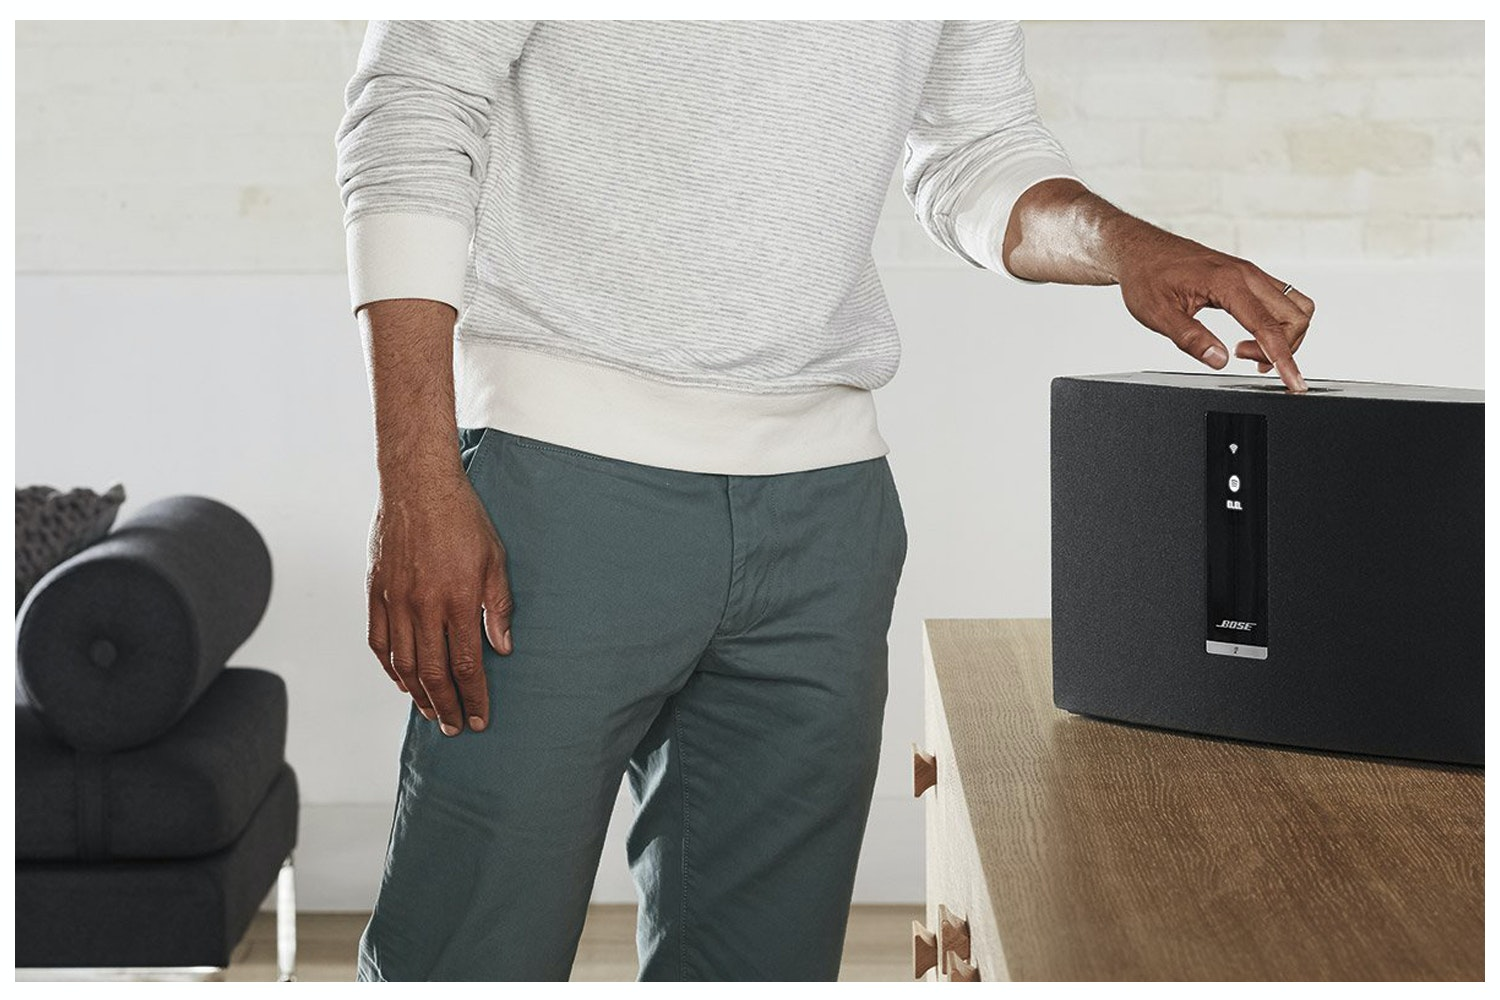 Bose SoundTouch Series 30 Wi-Fi Music System